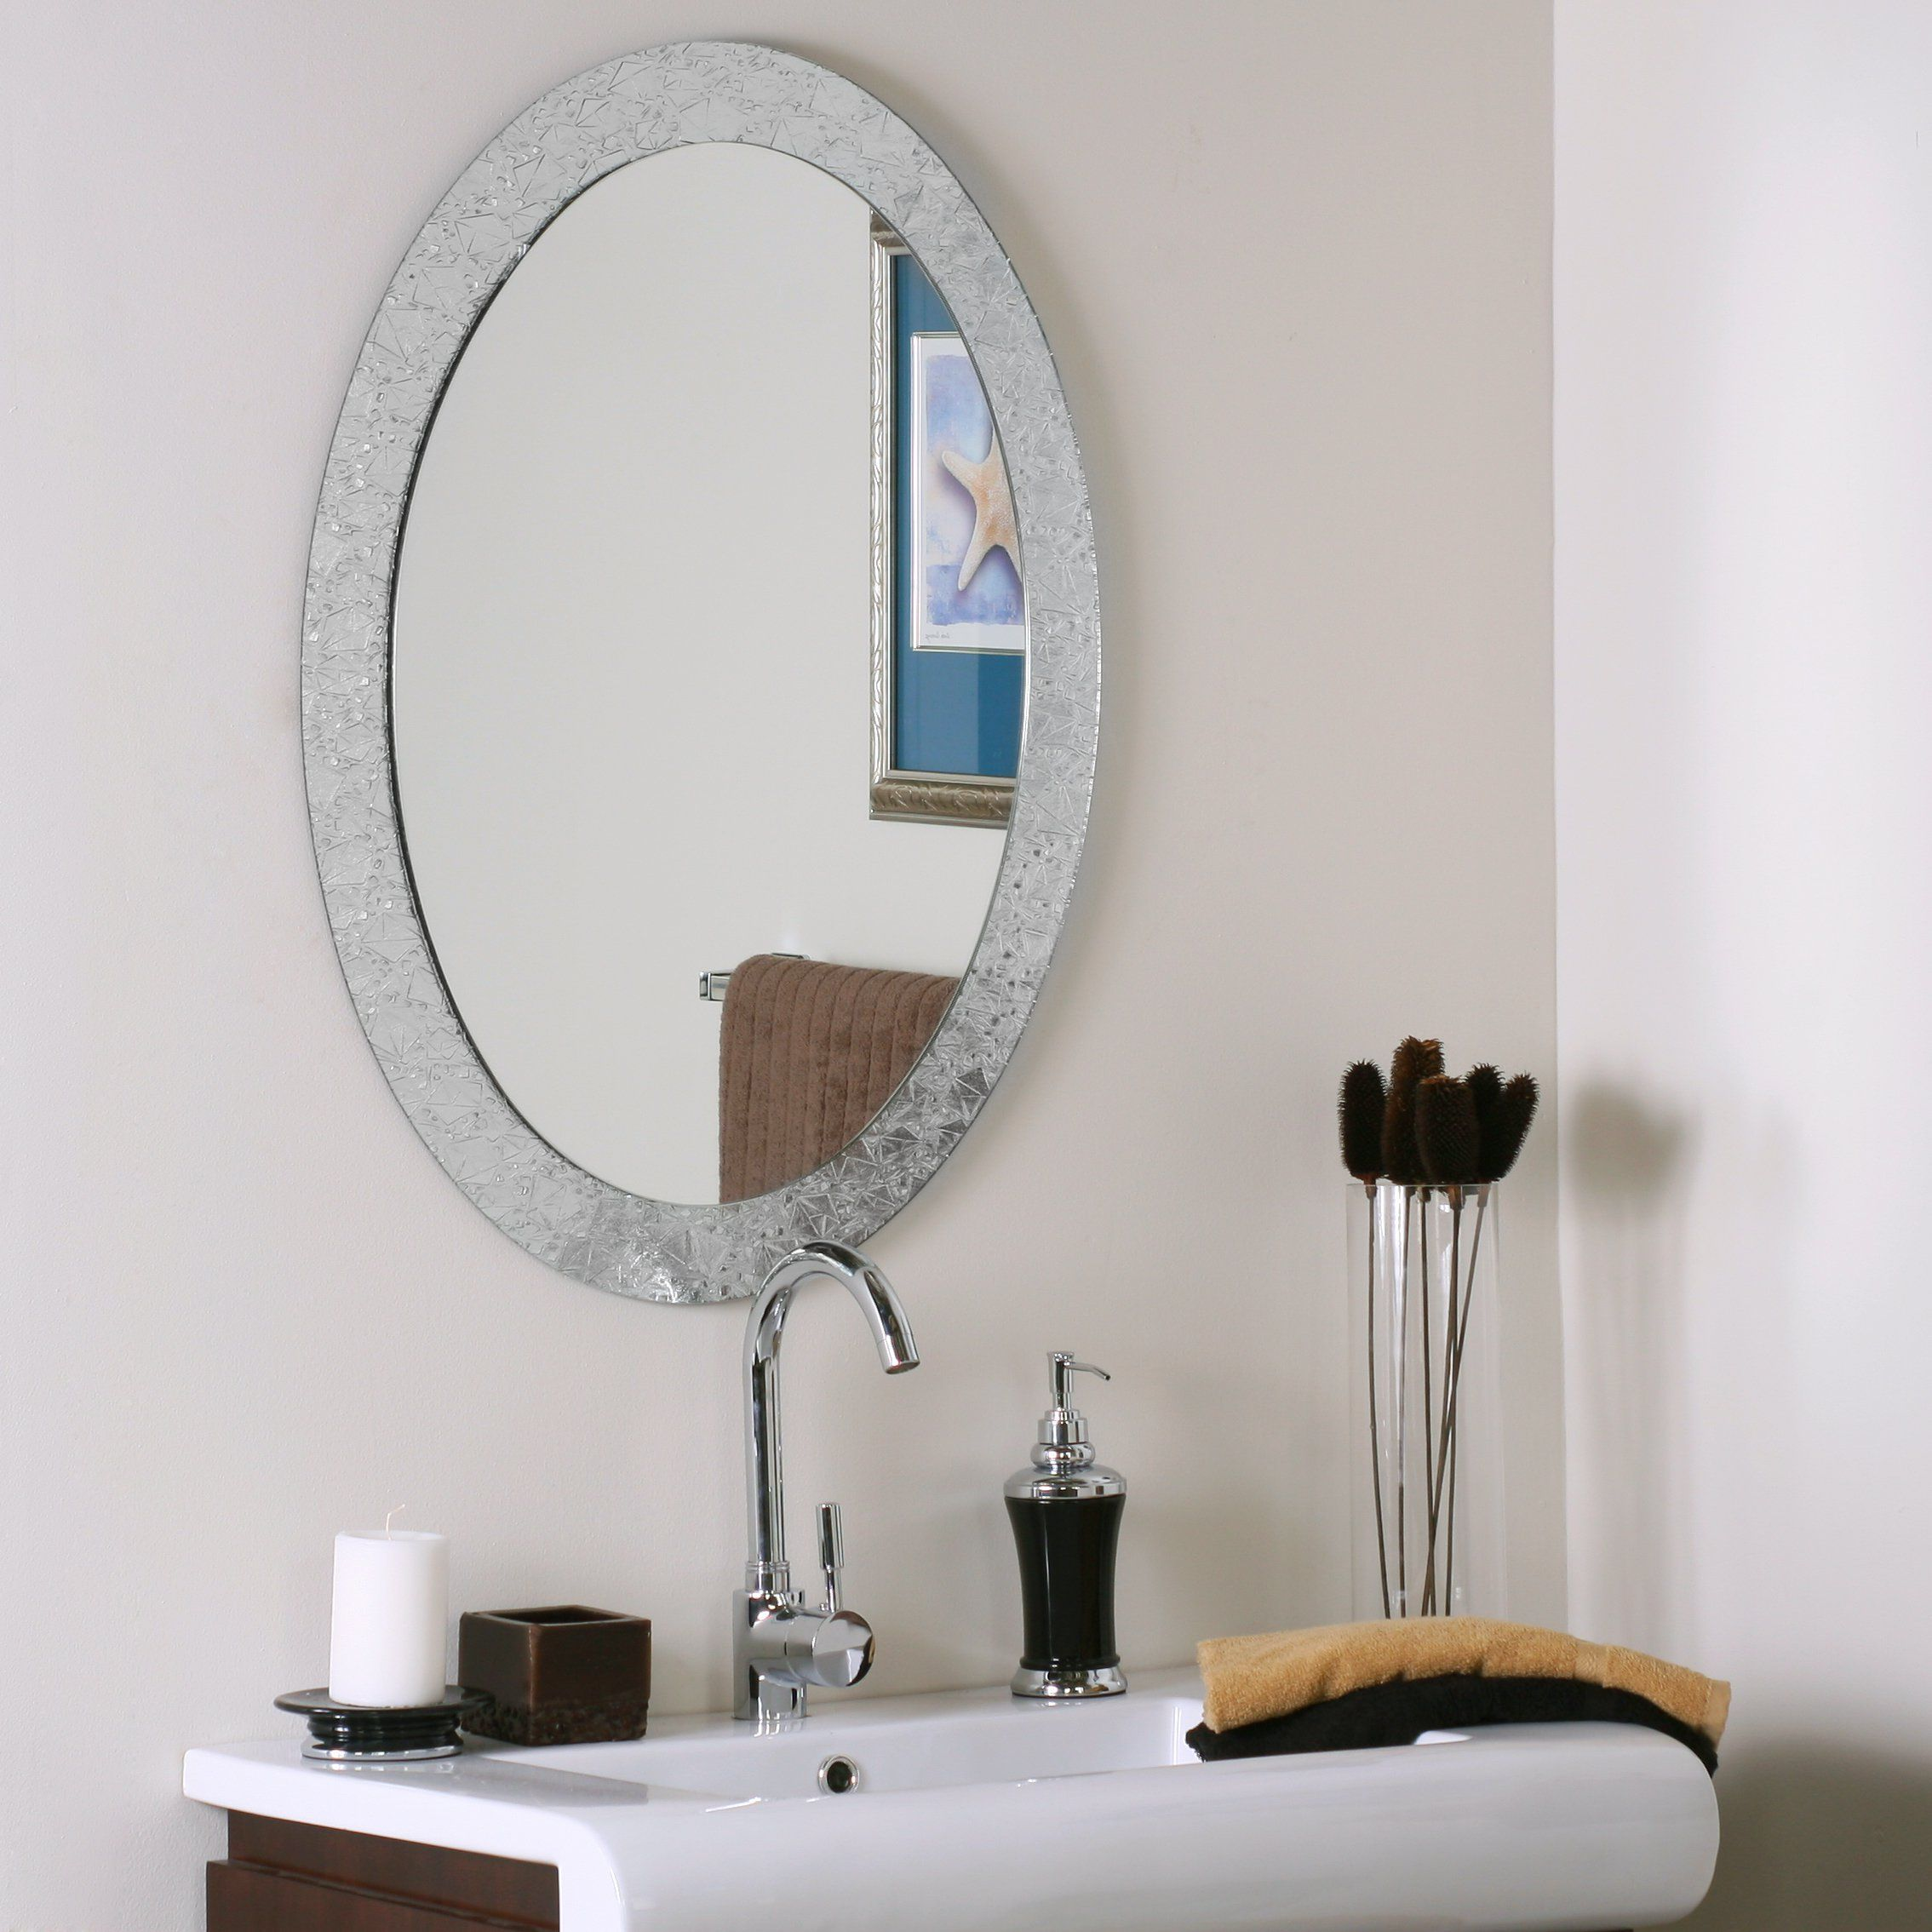 Bathroom Mirror Designs Bathroom Mirror Ideas To Inspire You Best  Bathroom Mirrors And